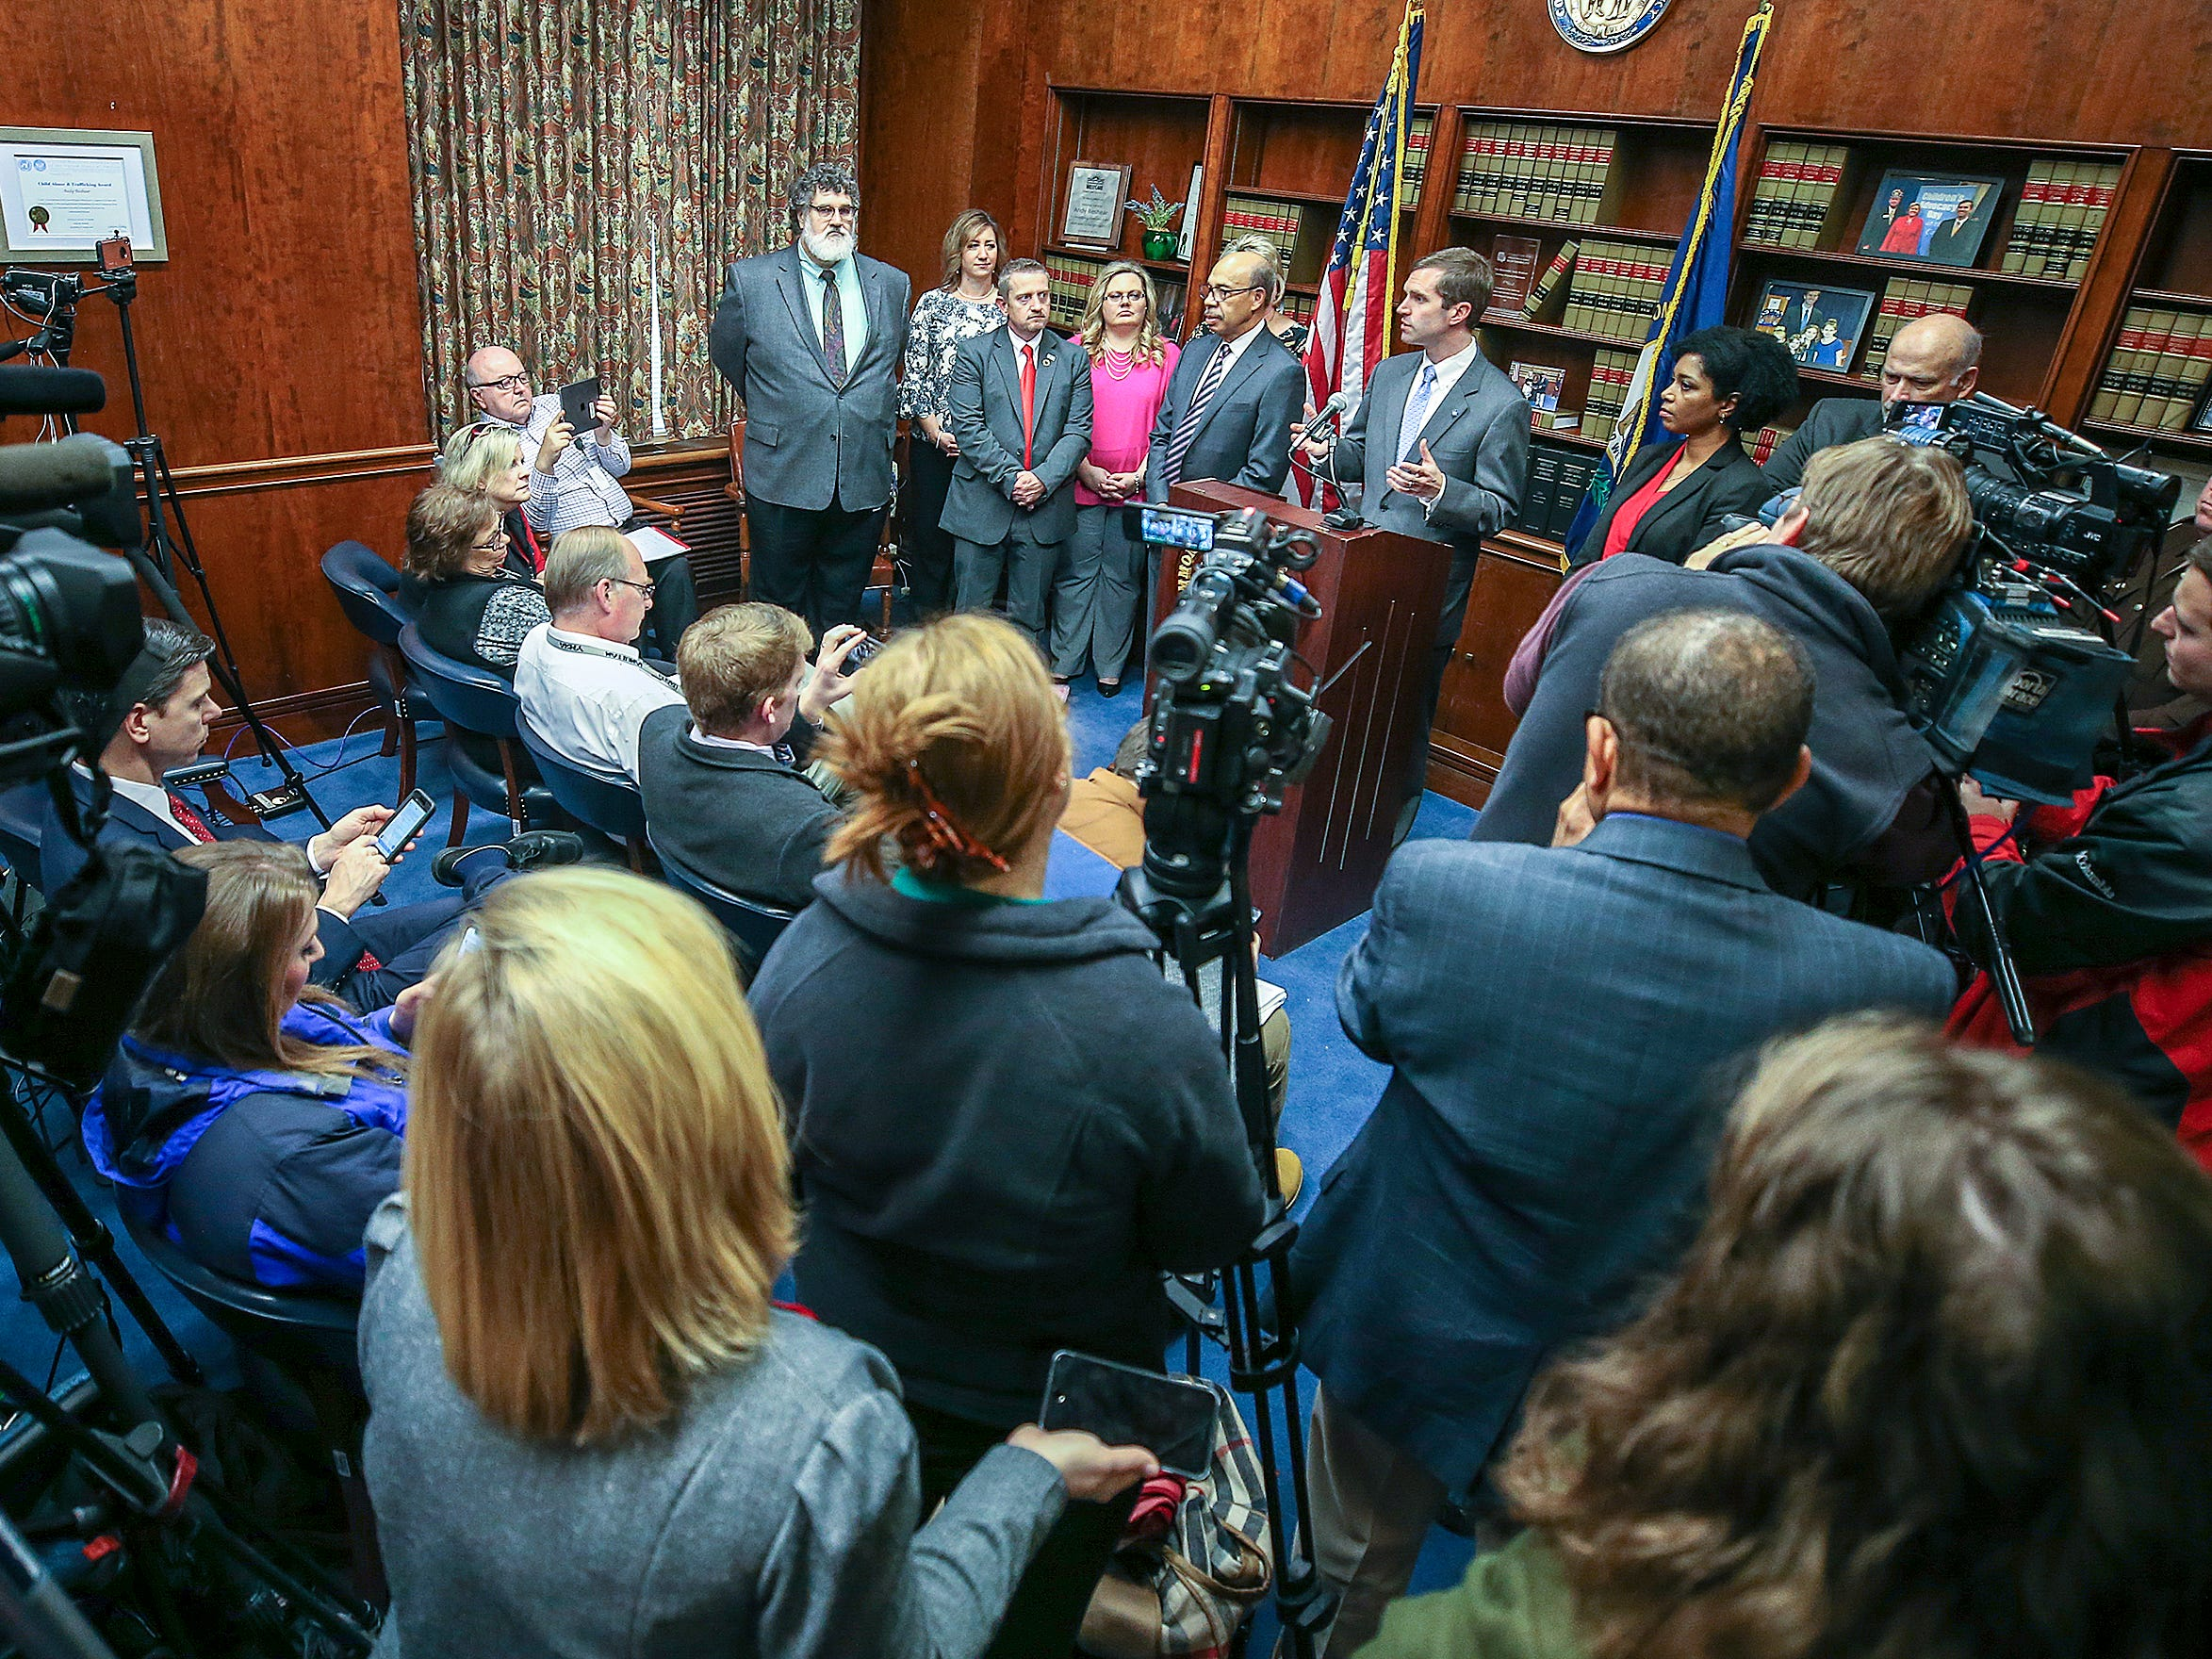 Kentucky Attorney General Andy Beshear speaks with the media after a Kentucky Supreme Court ruling that overturned Gov. Matt Bevin's pension reform bill. December 13, 2018